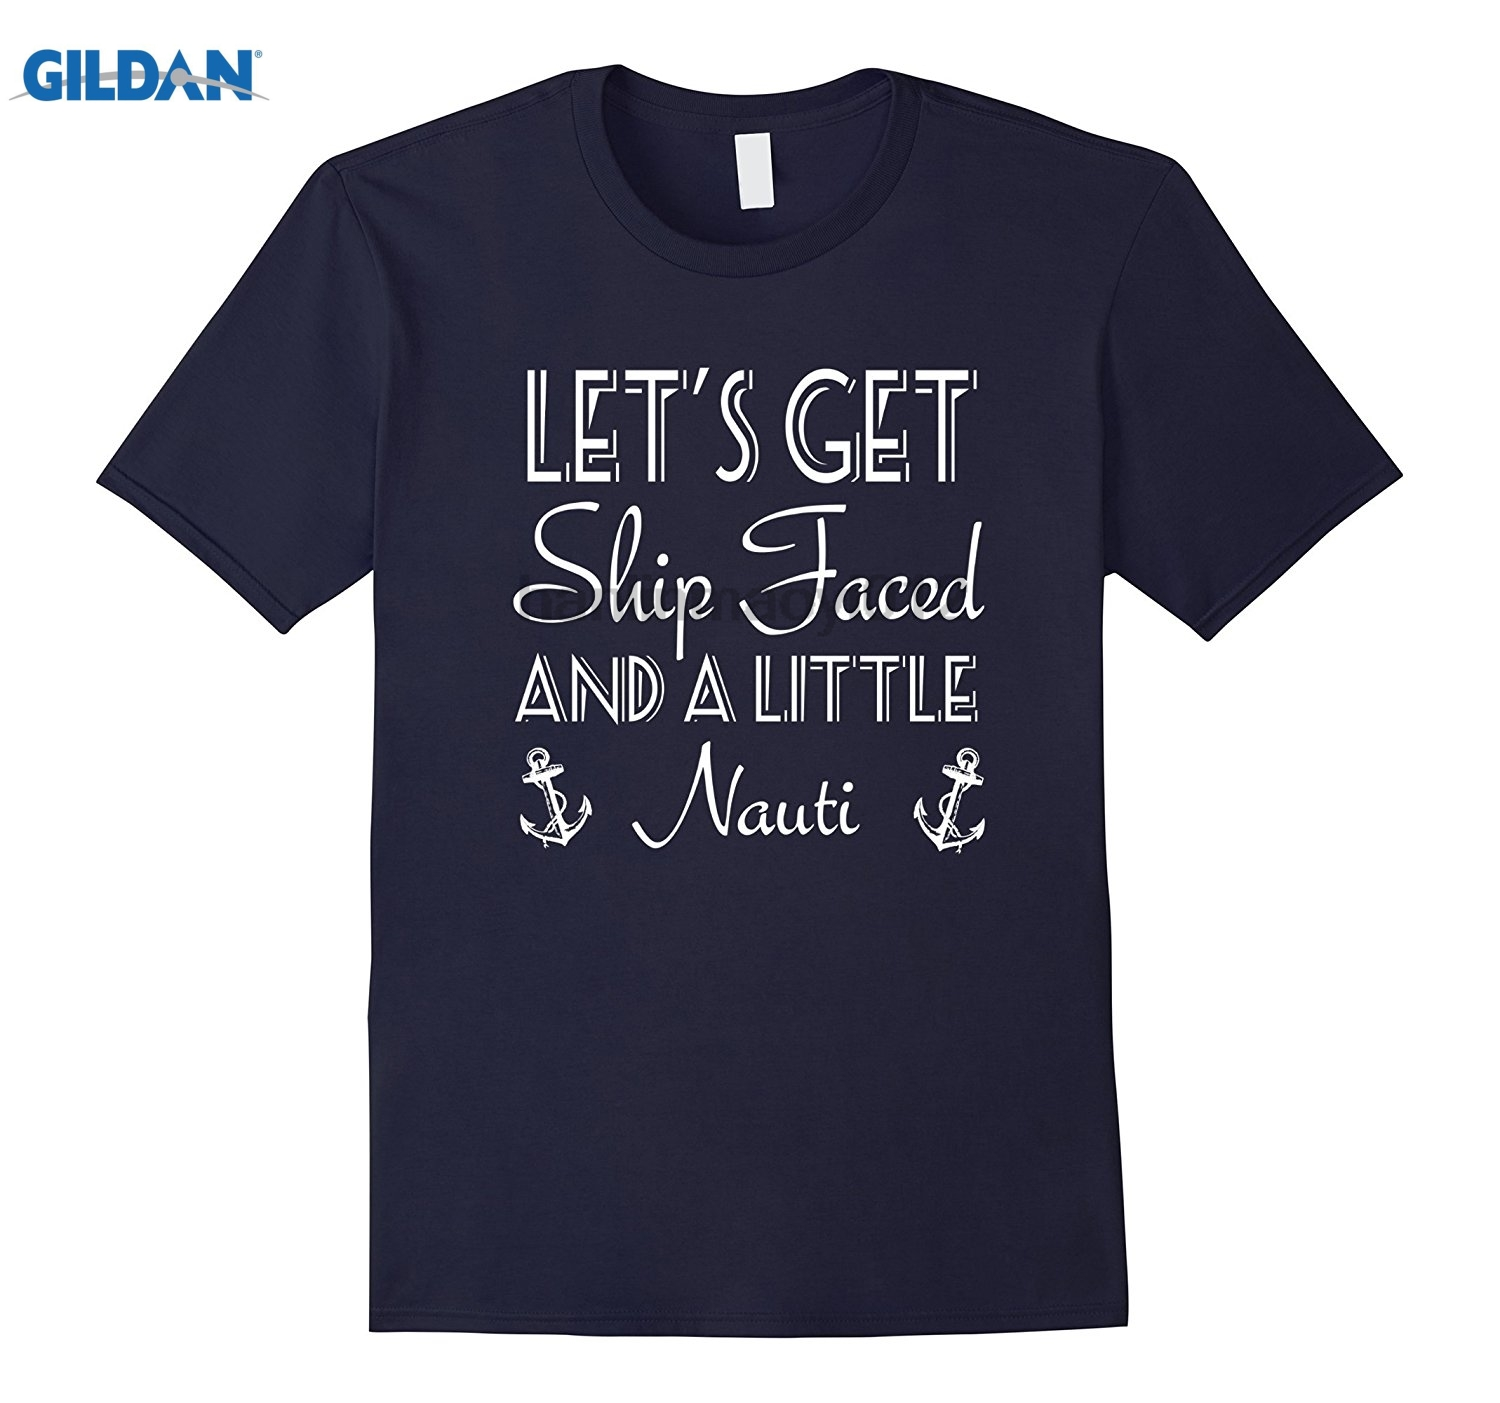 GILDAN Lets Get Ship Faced and a Little Nauti Cruise T-Shirt sunglasses women T-shirt ...